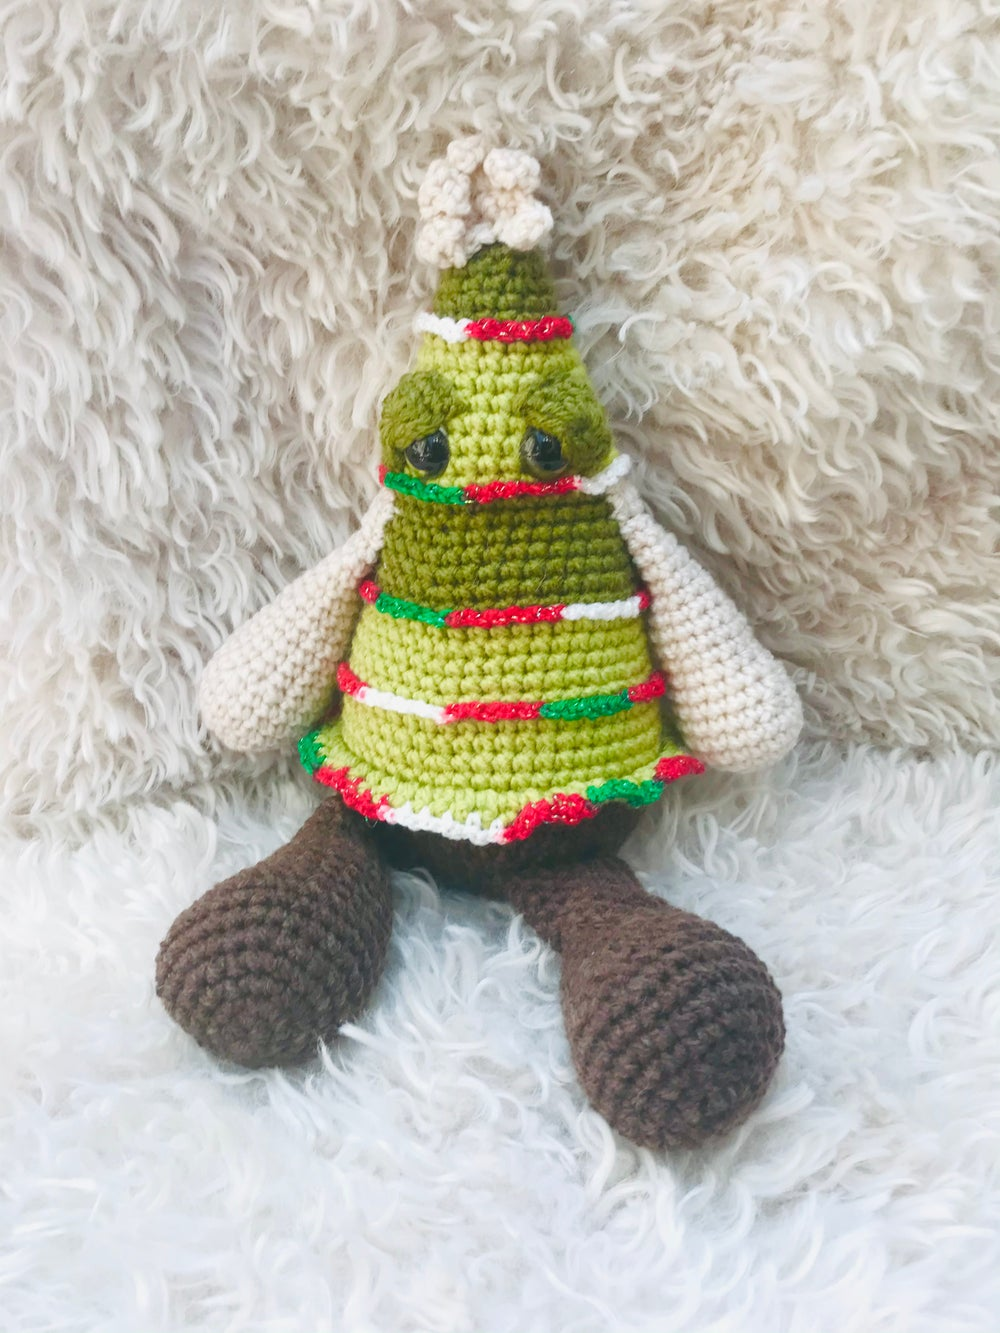 Chrissy the Crocheted Christmas Tree